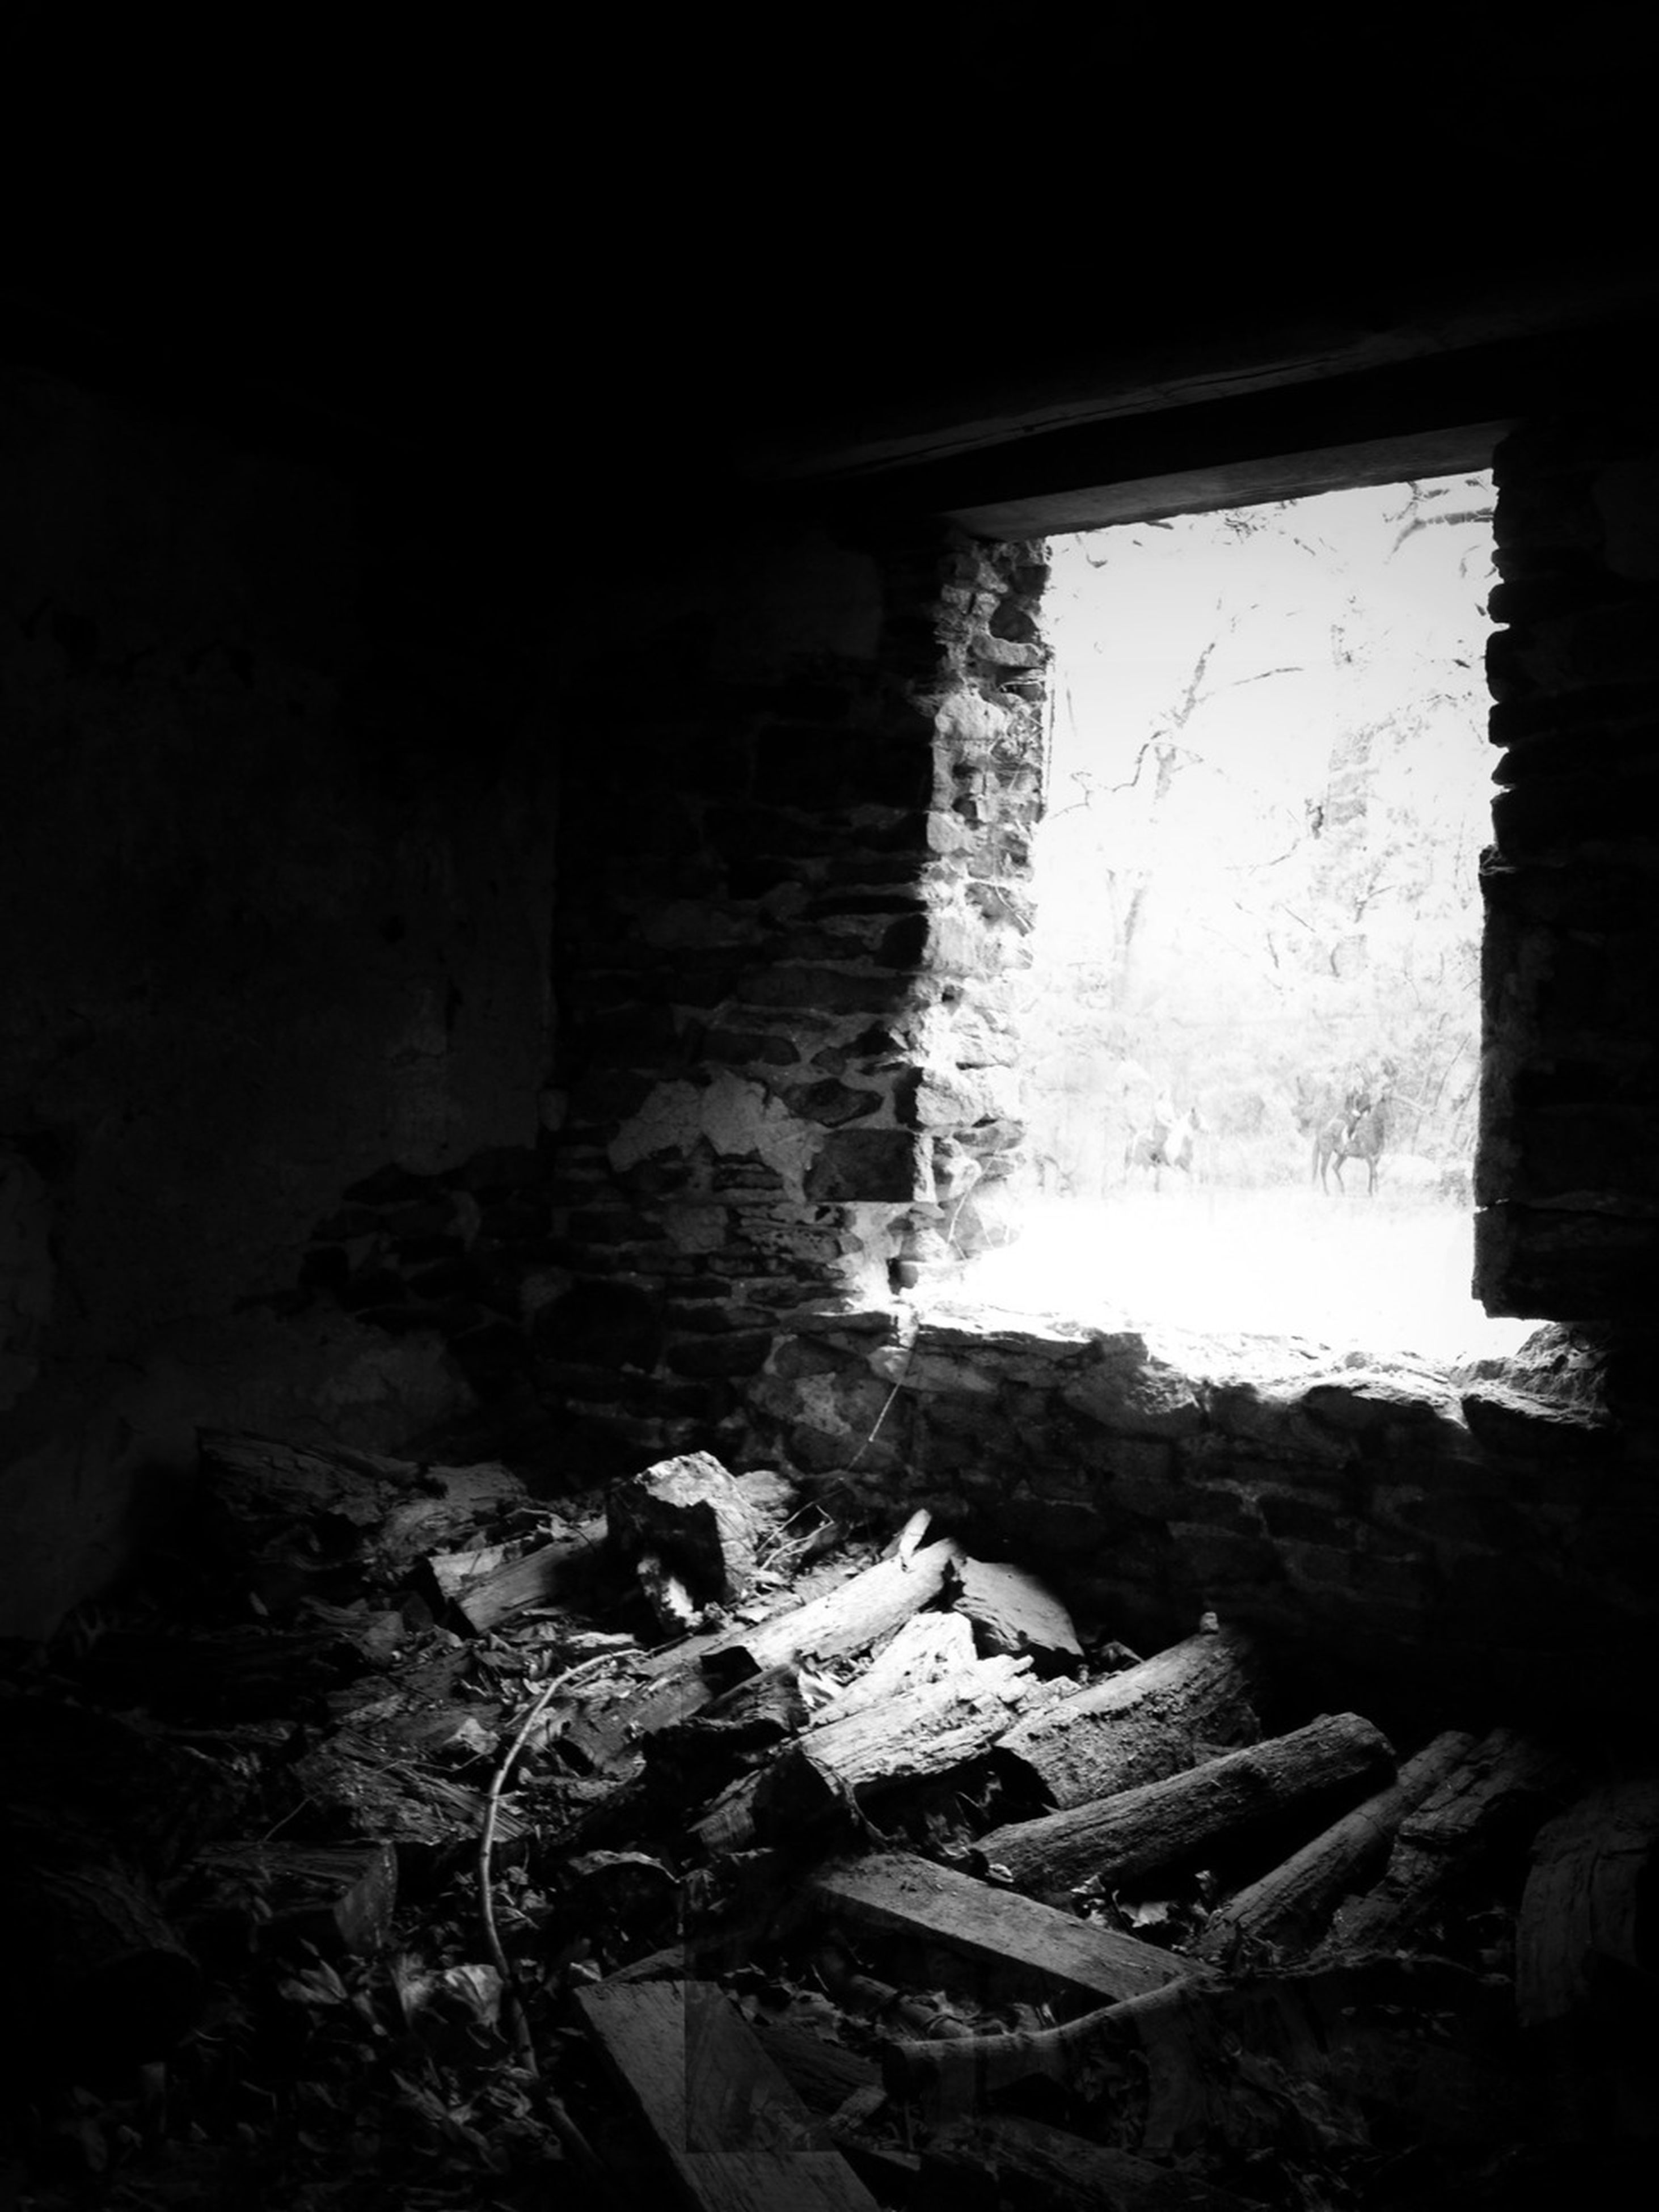 abandoned, obsolete, damaged, indoors, deterioration, run-down, old, built structure, ruined, architecture, destruction, bad condition, broken, old ruin, weathered, window, wall - building feature, messy, house, rock - object